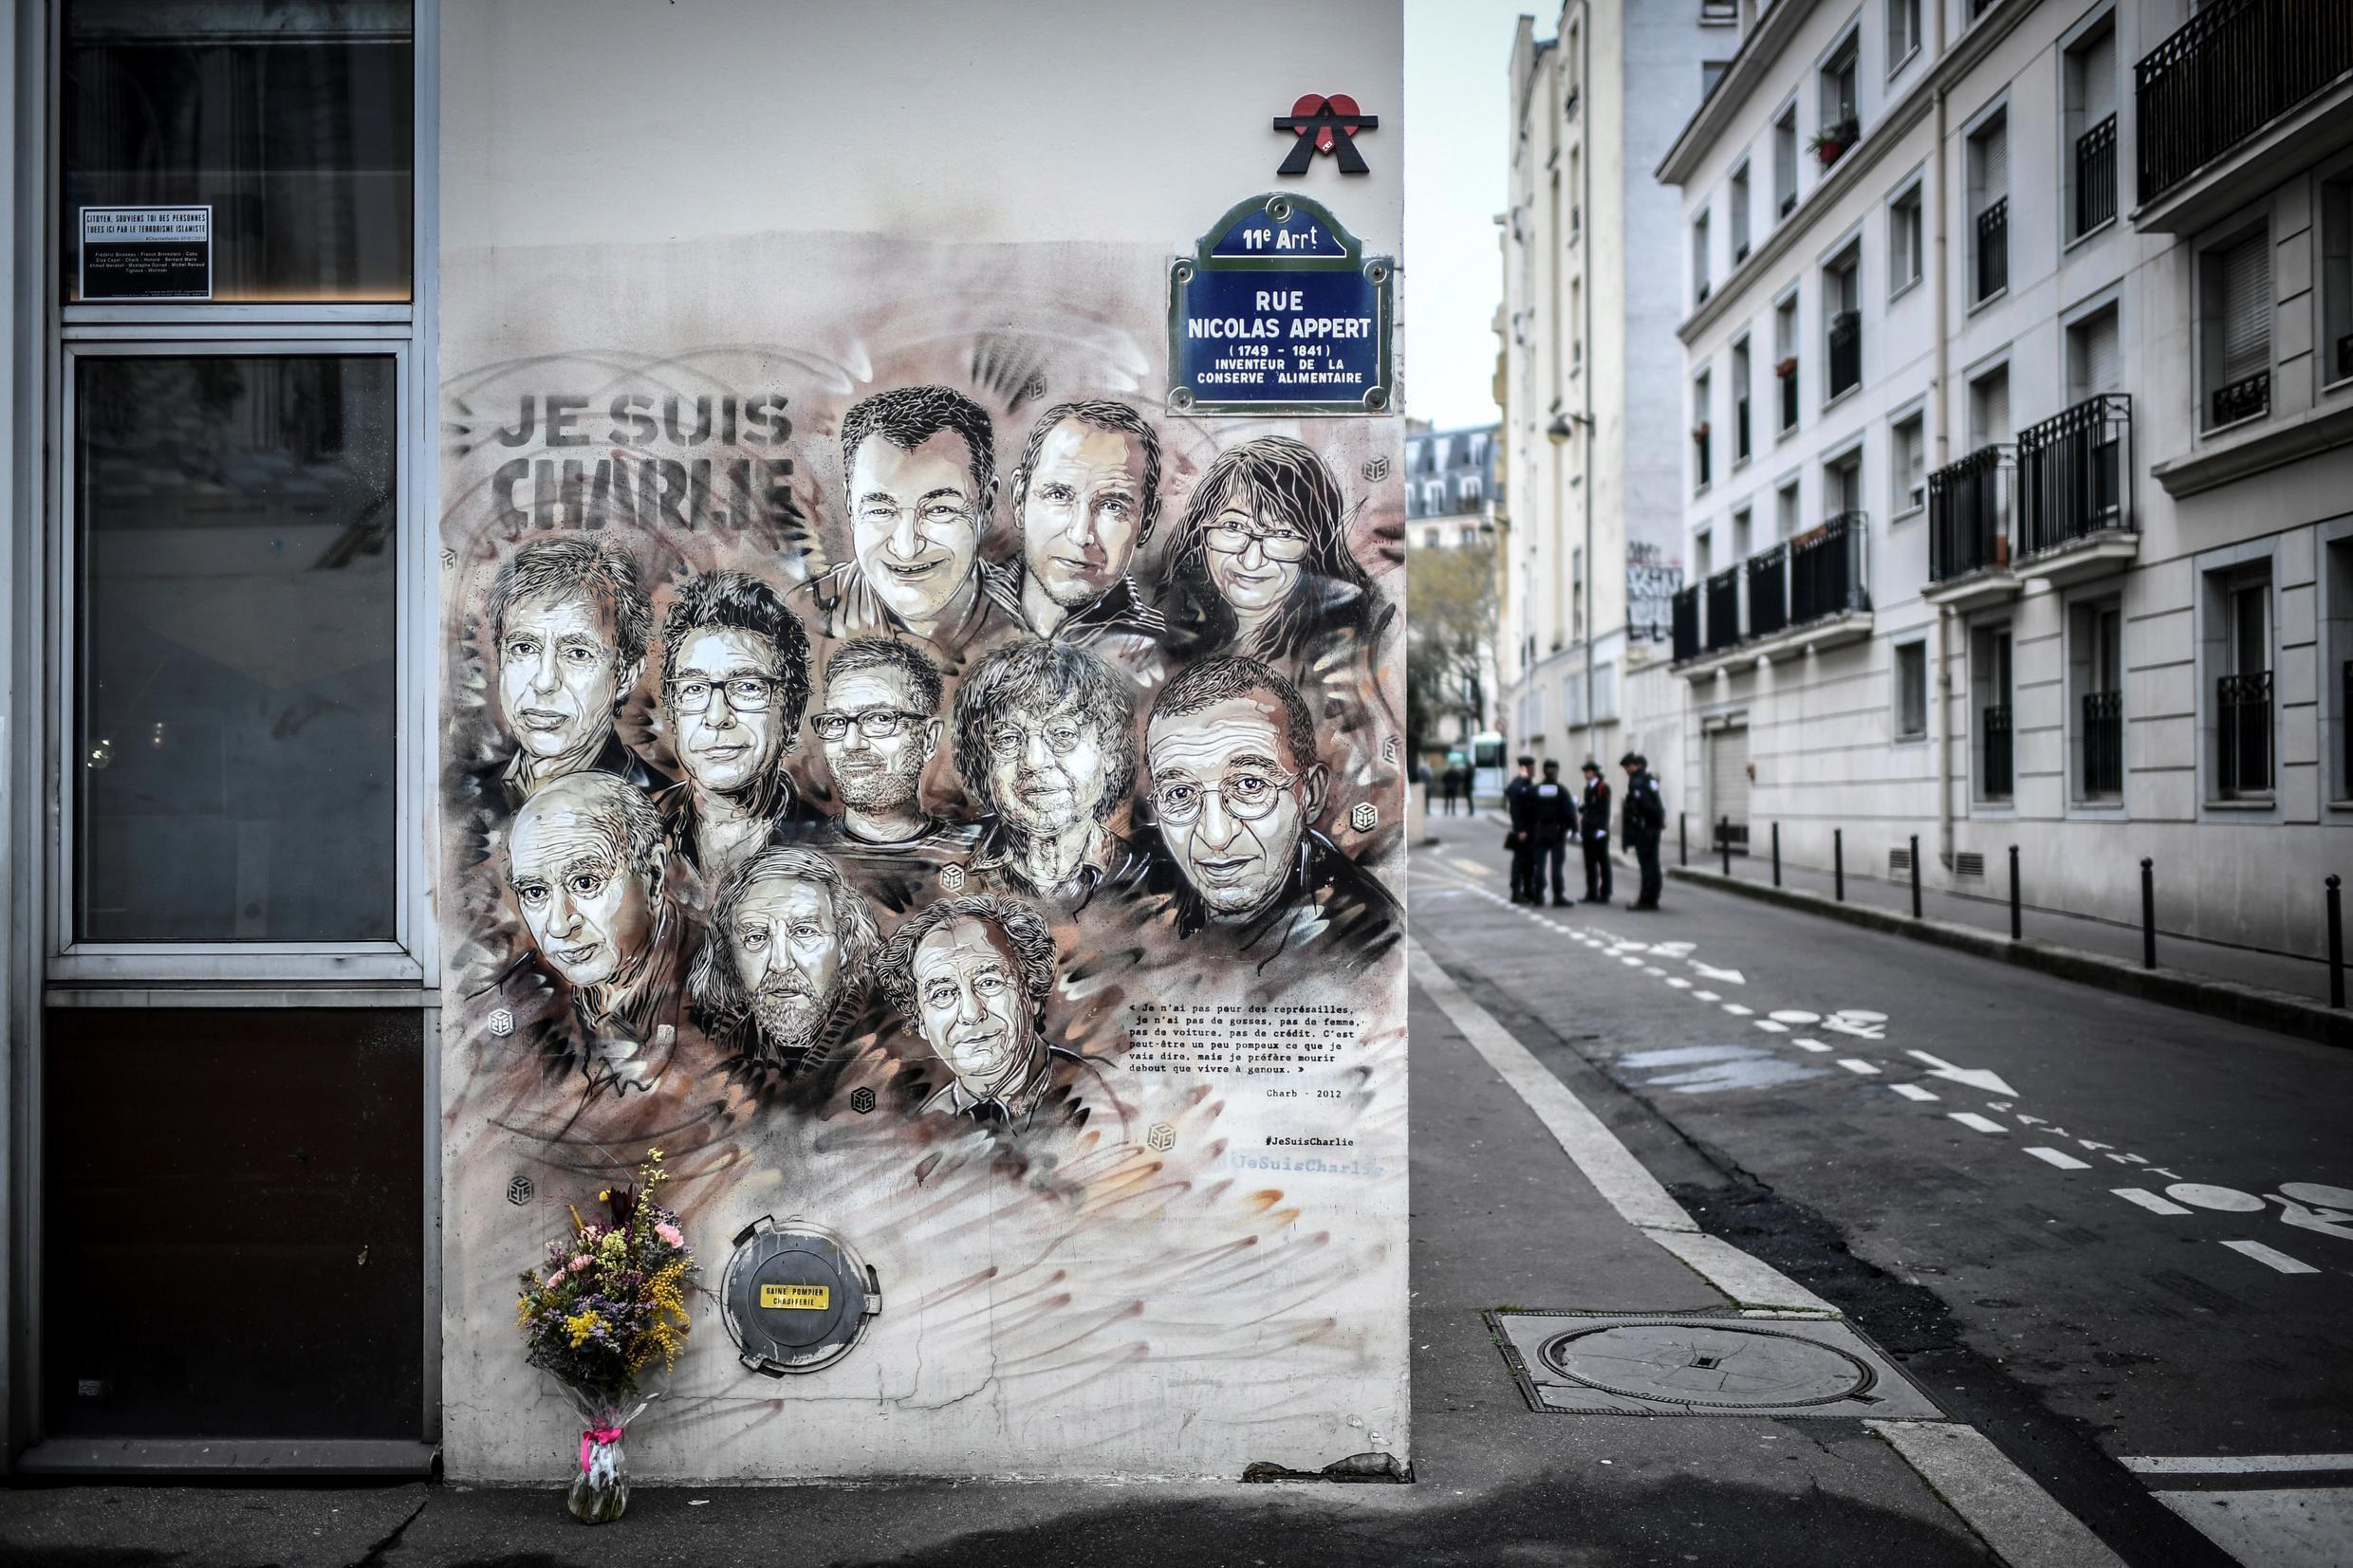 The street where Charlie Hebdo journalists and cartoonists were gunned down at their offices in 2015 was the scene of a new knife attack on 25 September 2020